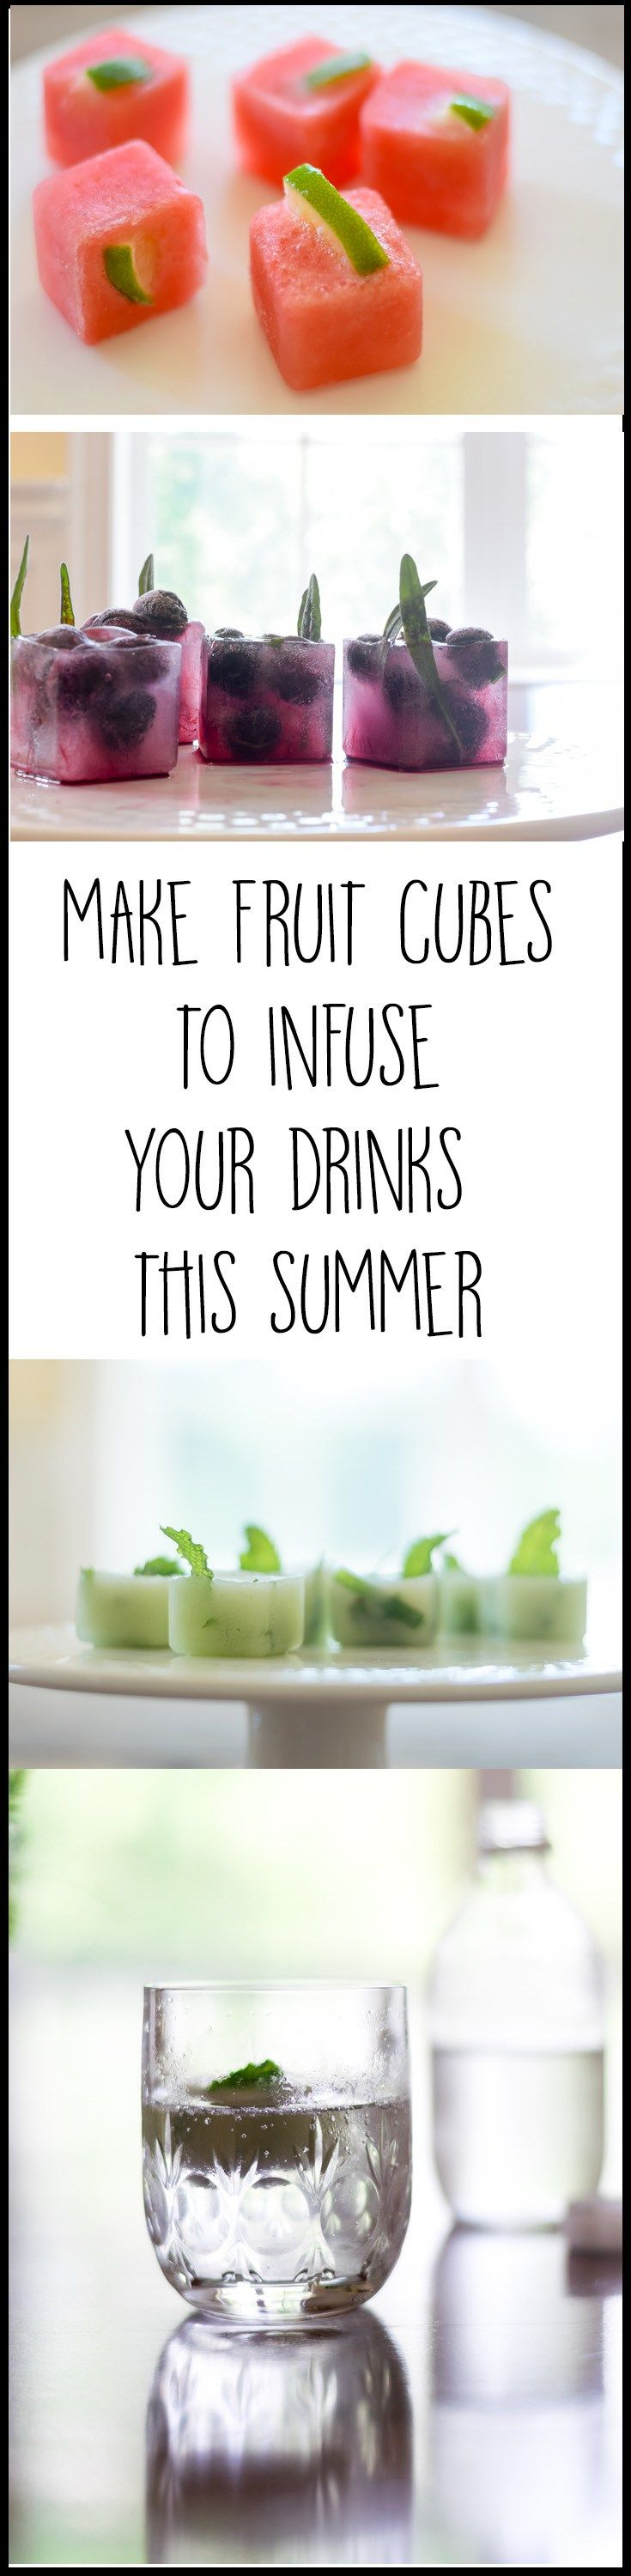 Fruit Infused Ice Cubes are the perfect way to add flavor to your water or favorite beverages this summer. Cucumber/Mint, Watermelon/Lime and Blueberry/Lavender are delicious combinations and make getting that daily water quota all the more enjoyable.